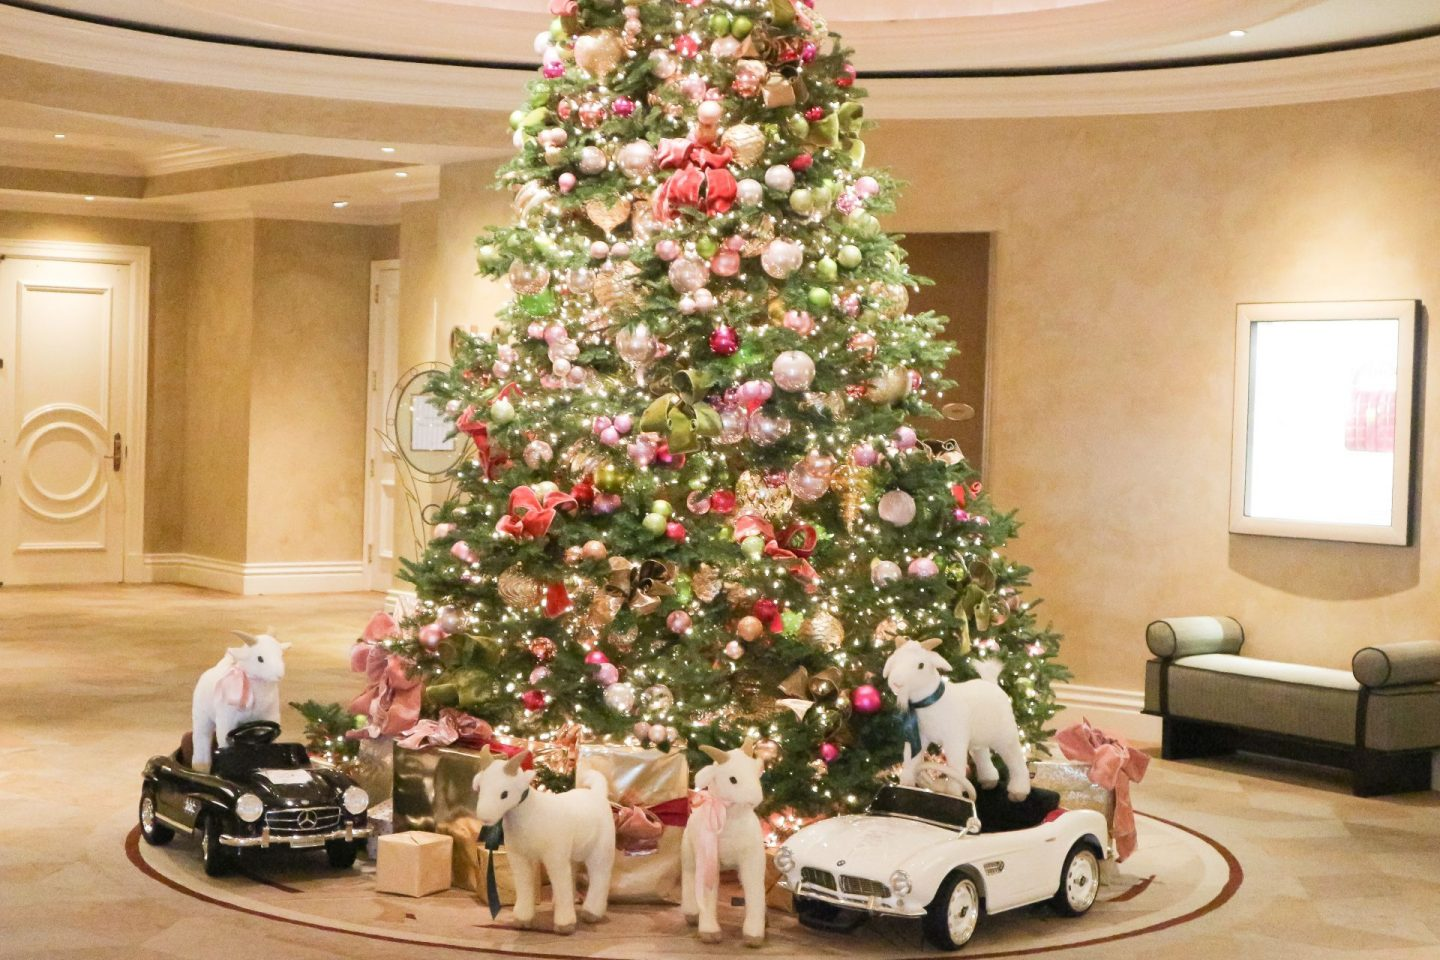 the beverly hills hotel Christmas tree 2019